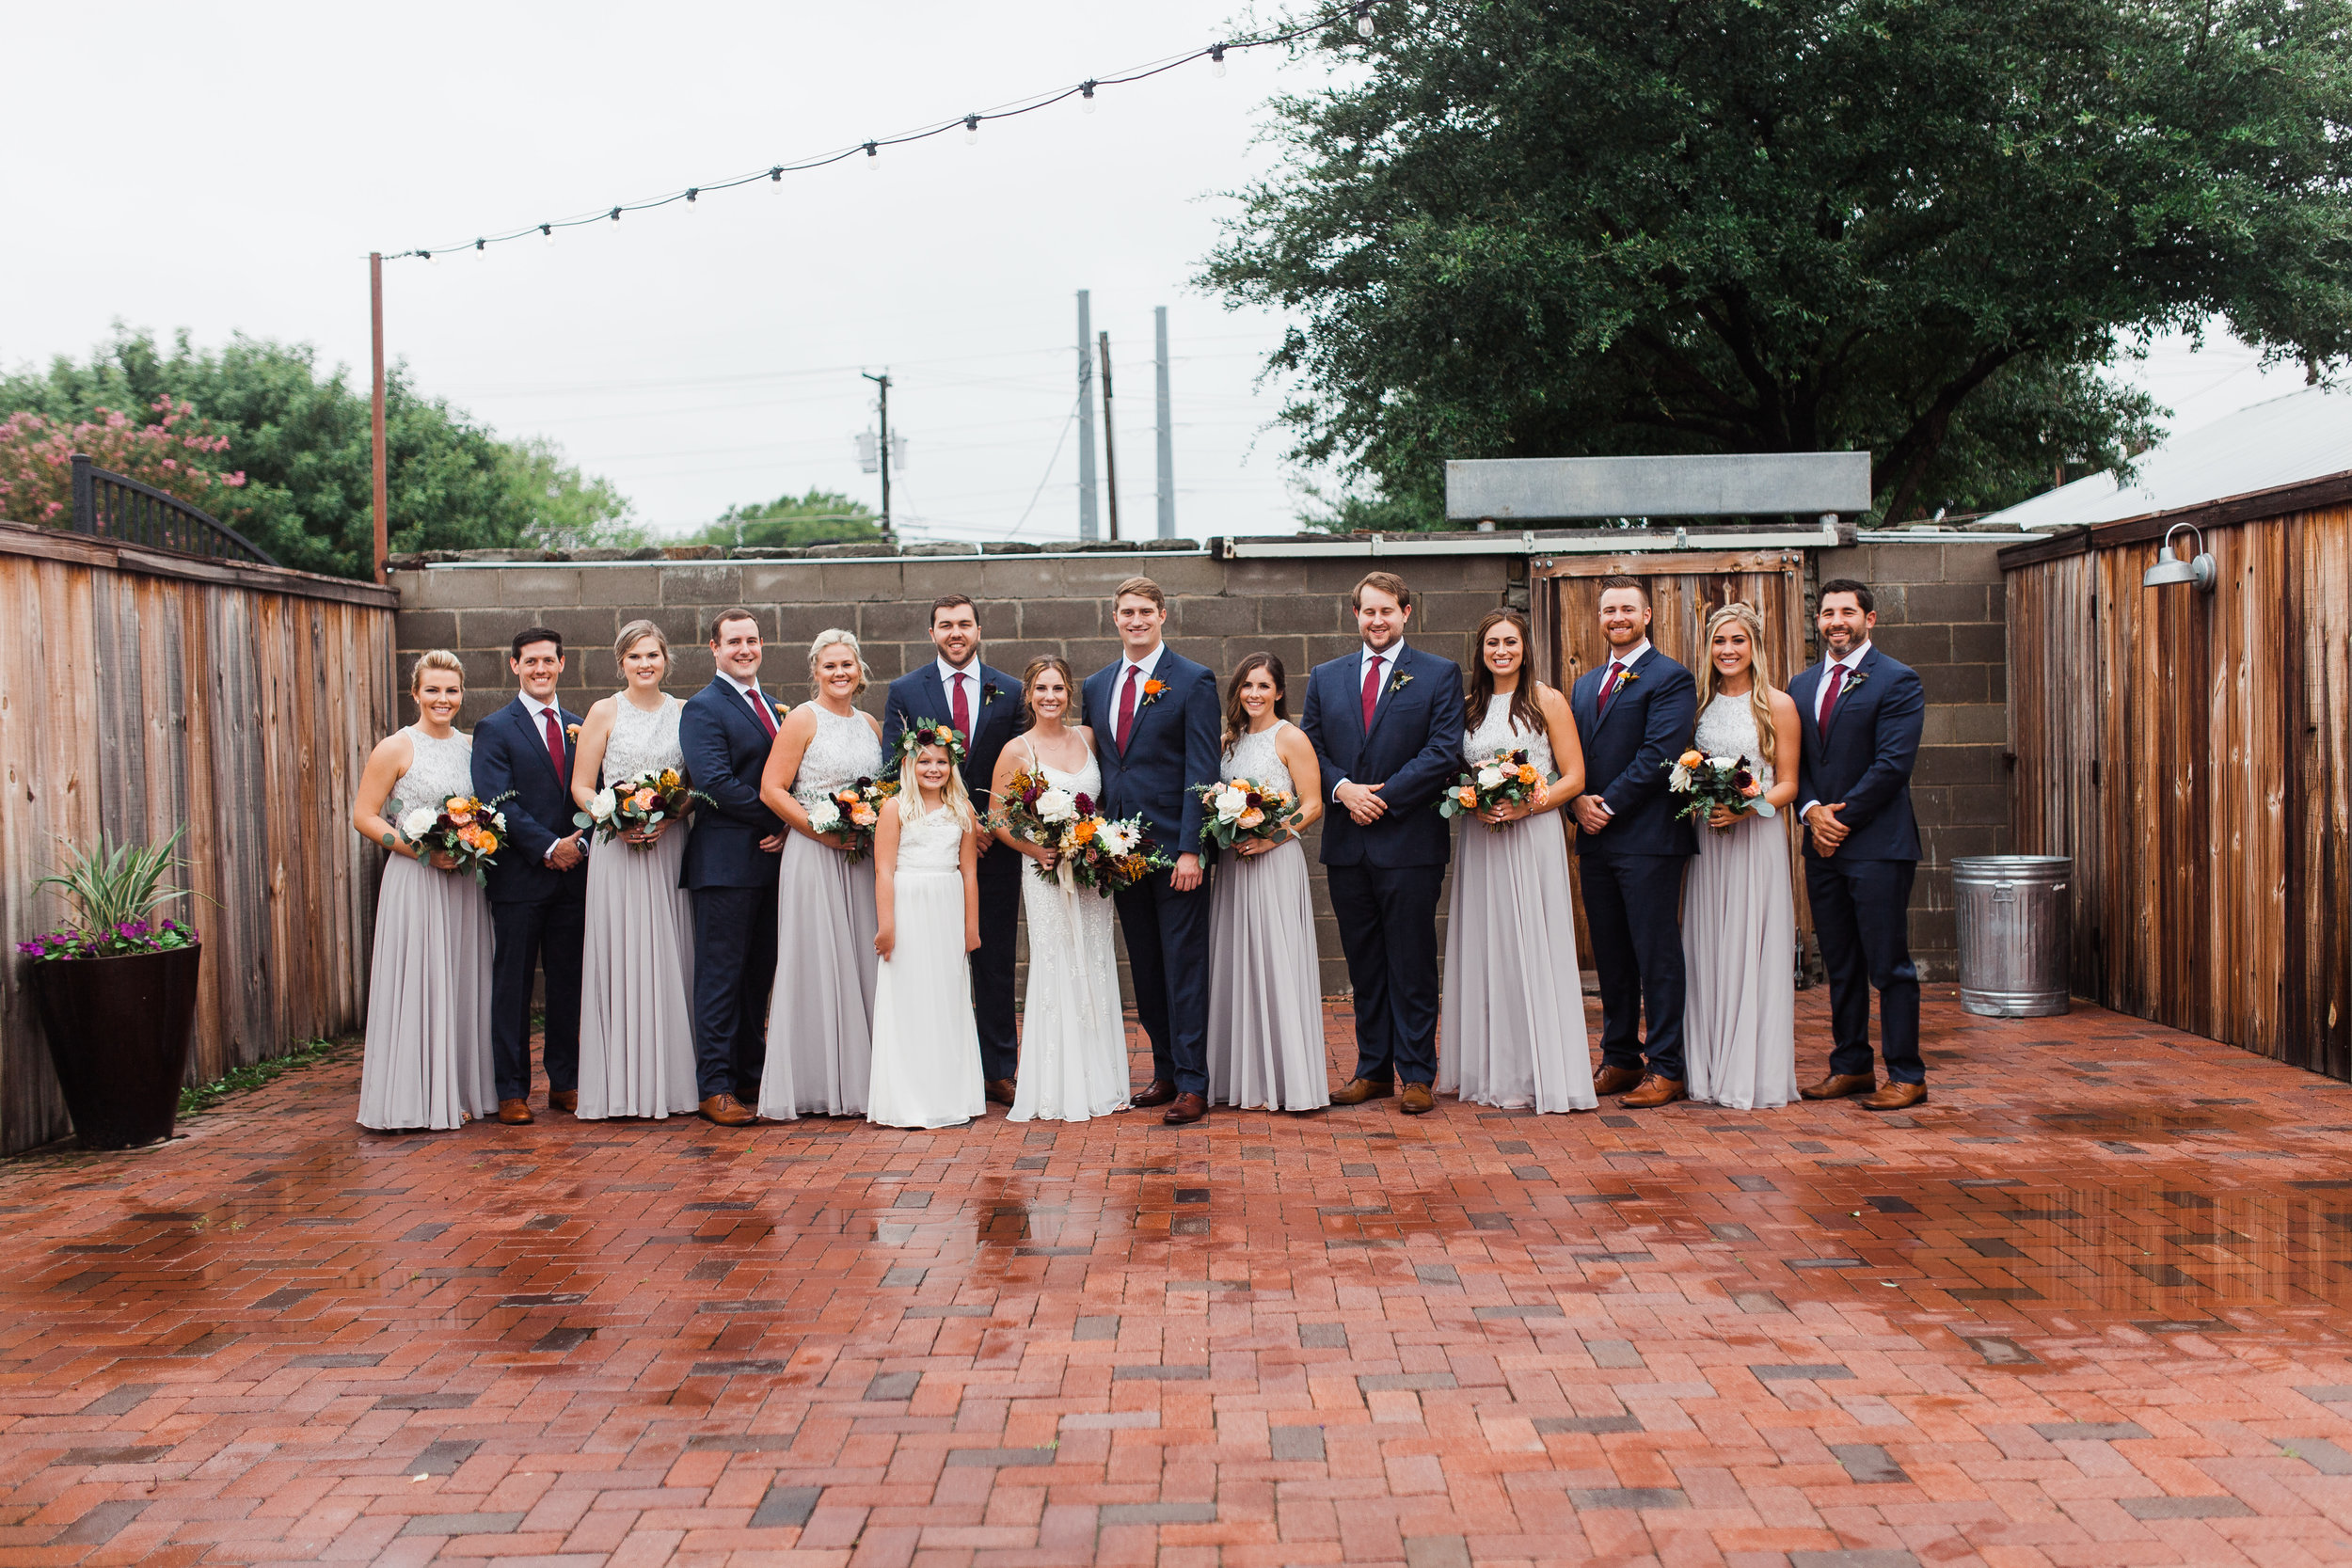 katy and clint mopac event center fort worth tcu wedding-50.jpg